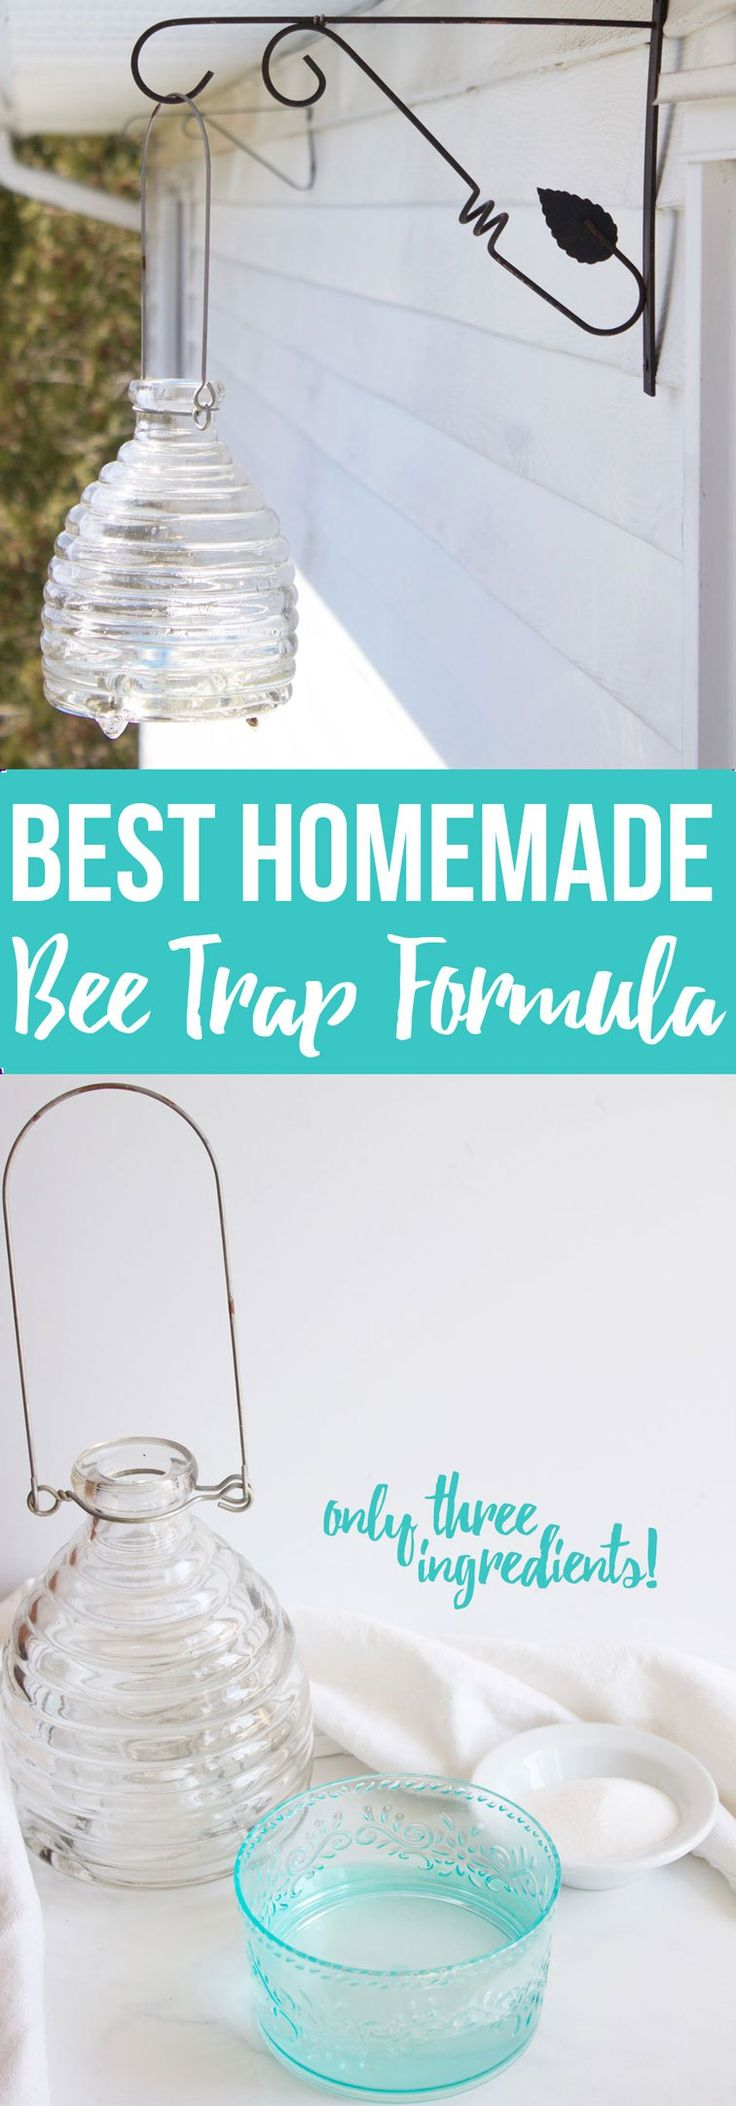 how to make a homemade bee trap